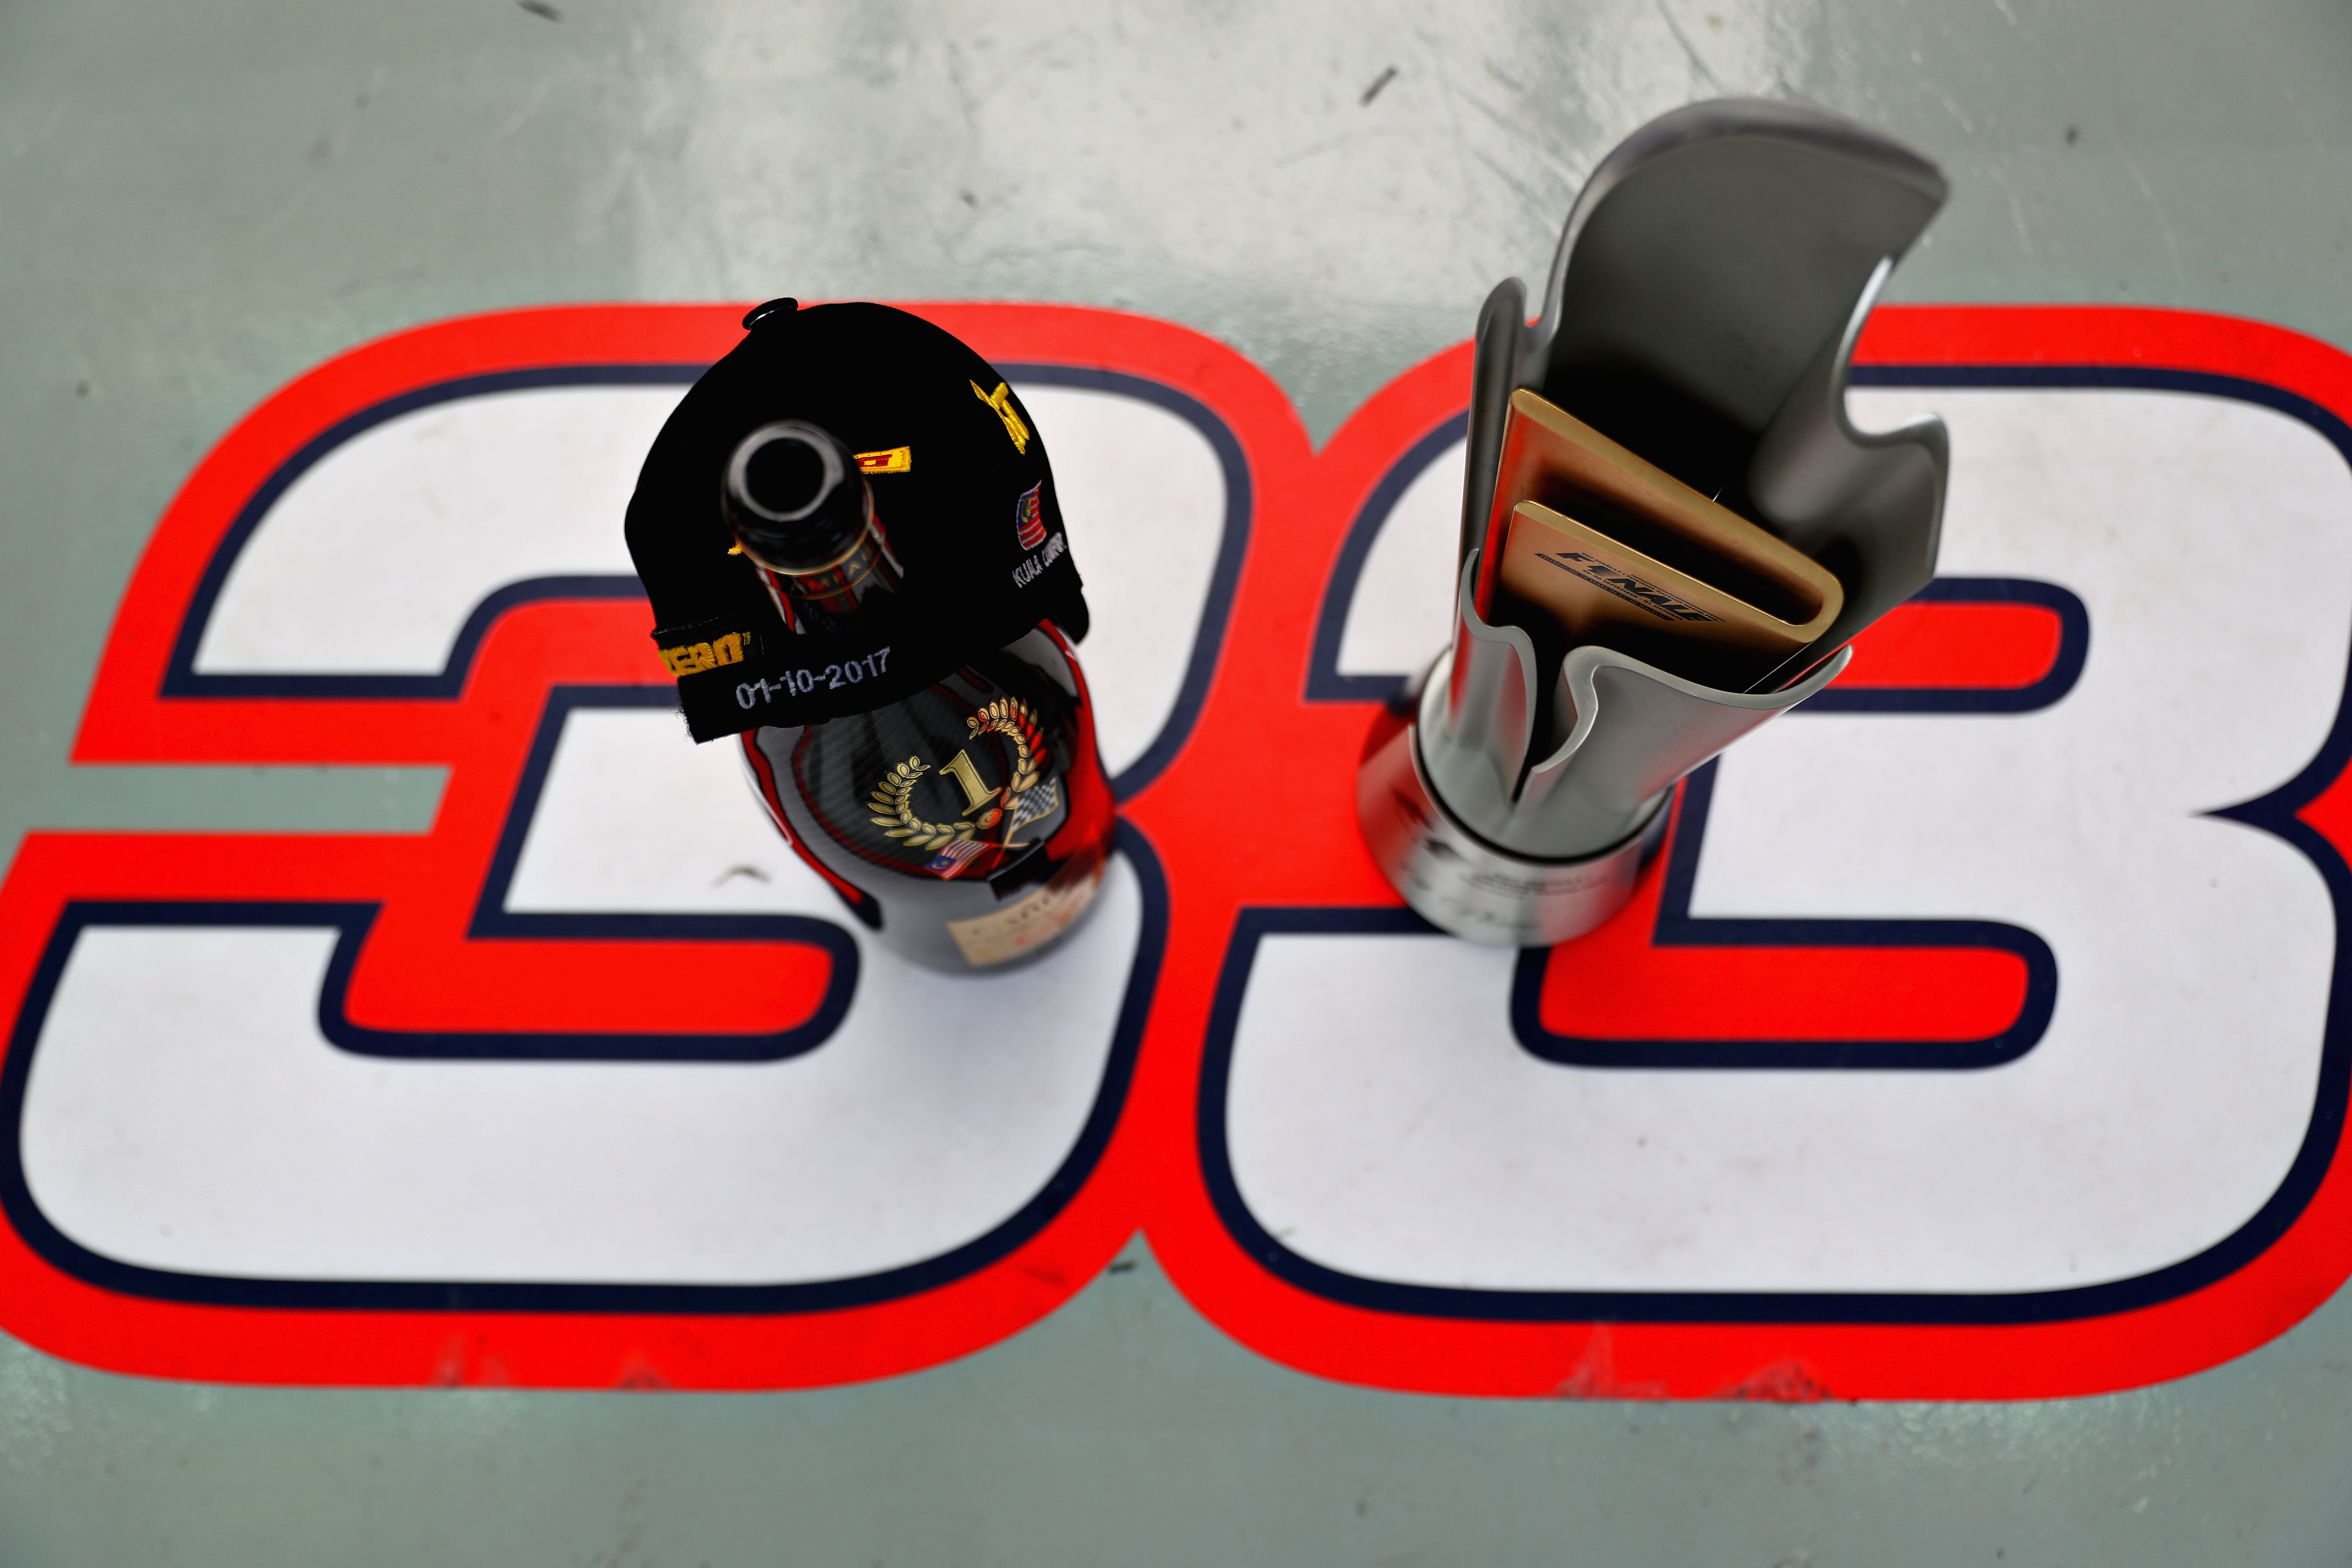 Verwonderend Max Verstappen has agreed the contract with Red Bull Racing for a LA-43